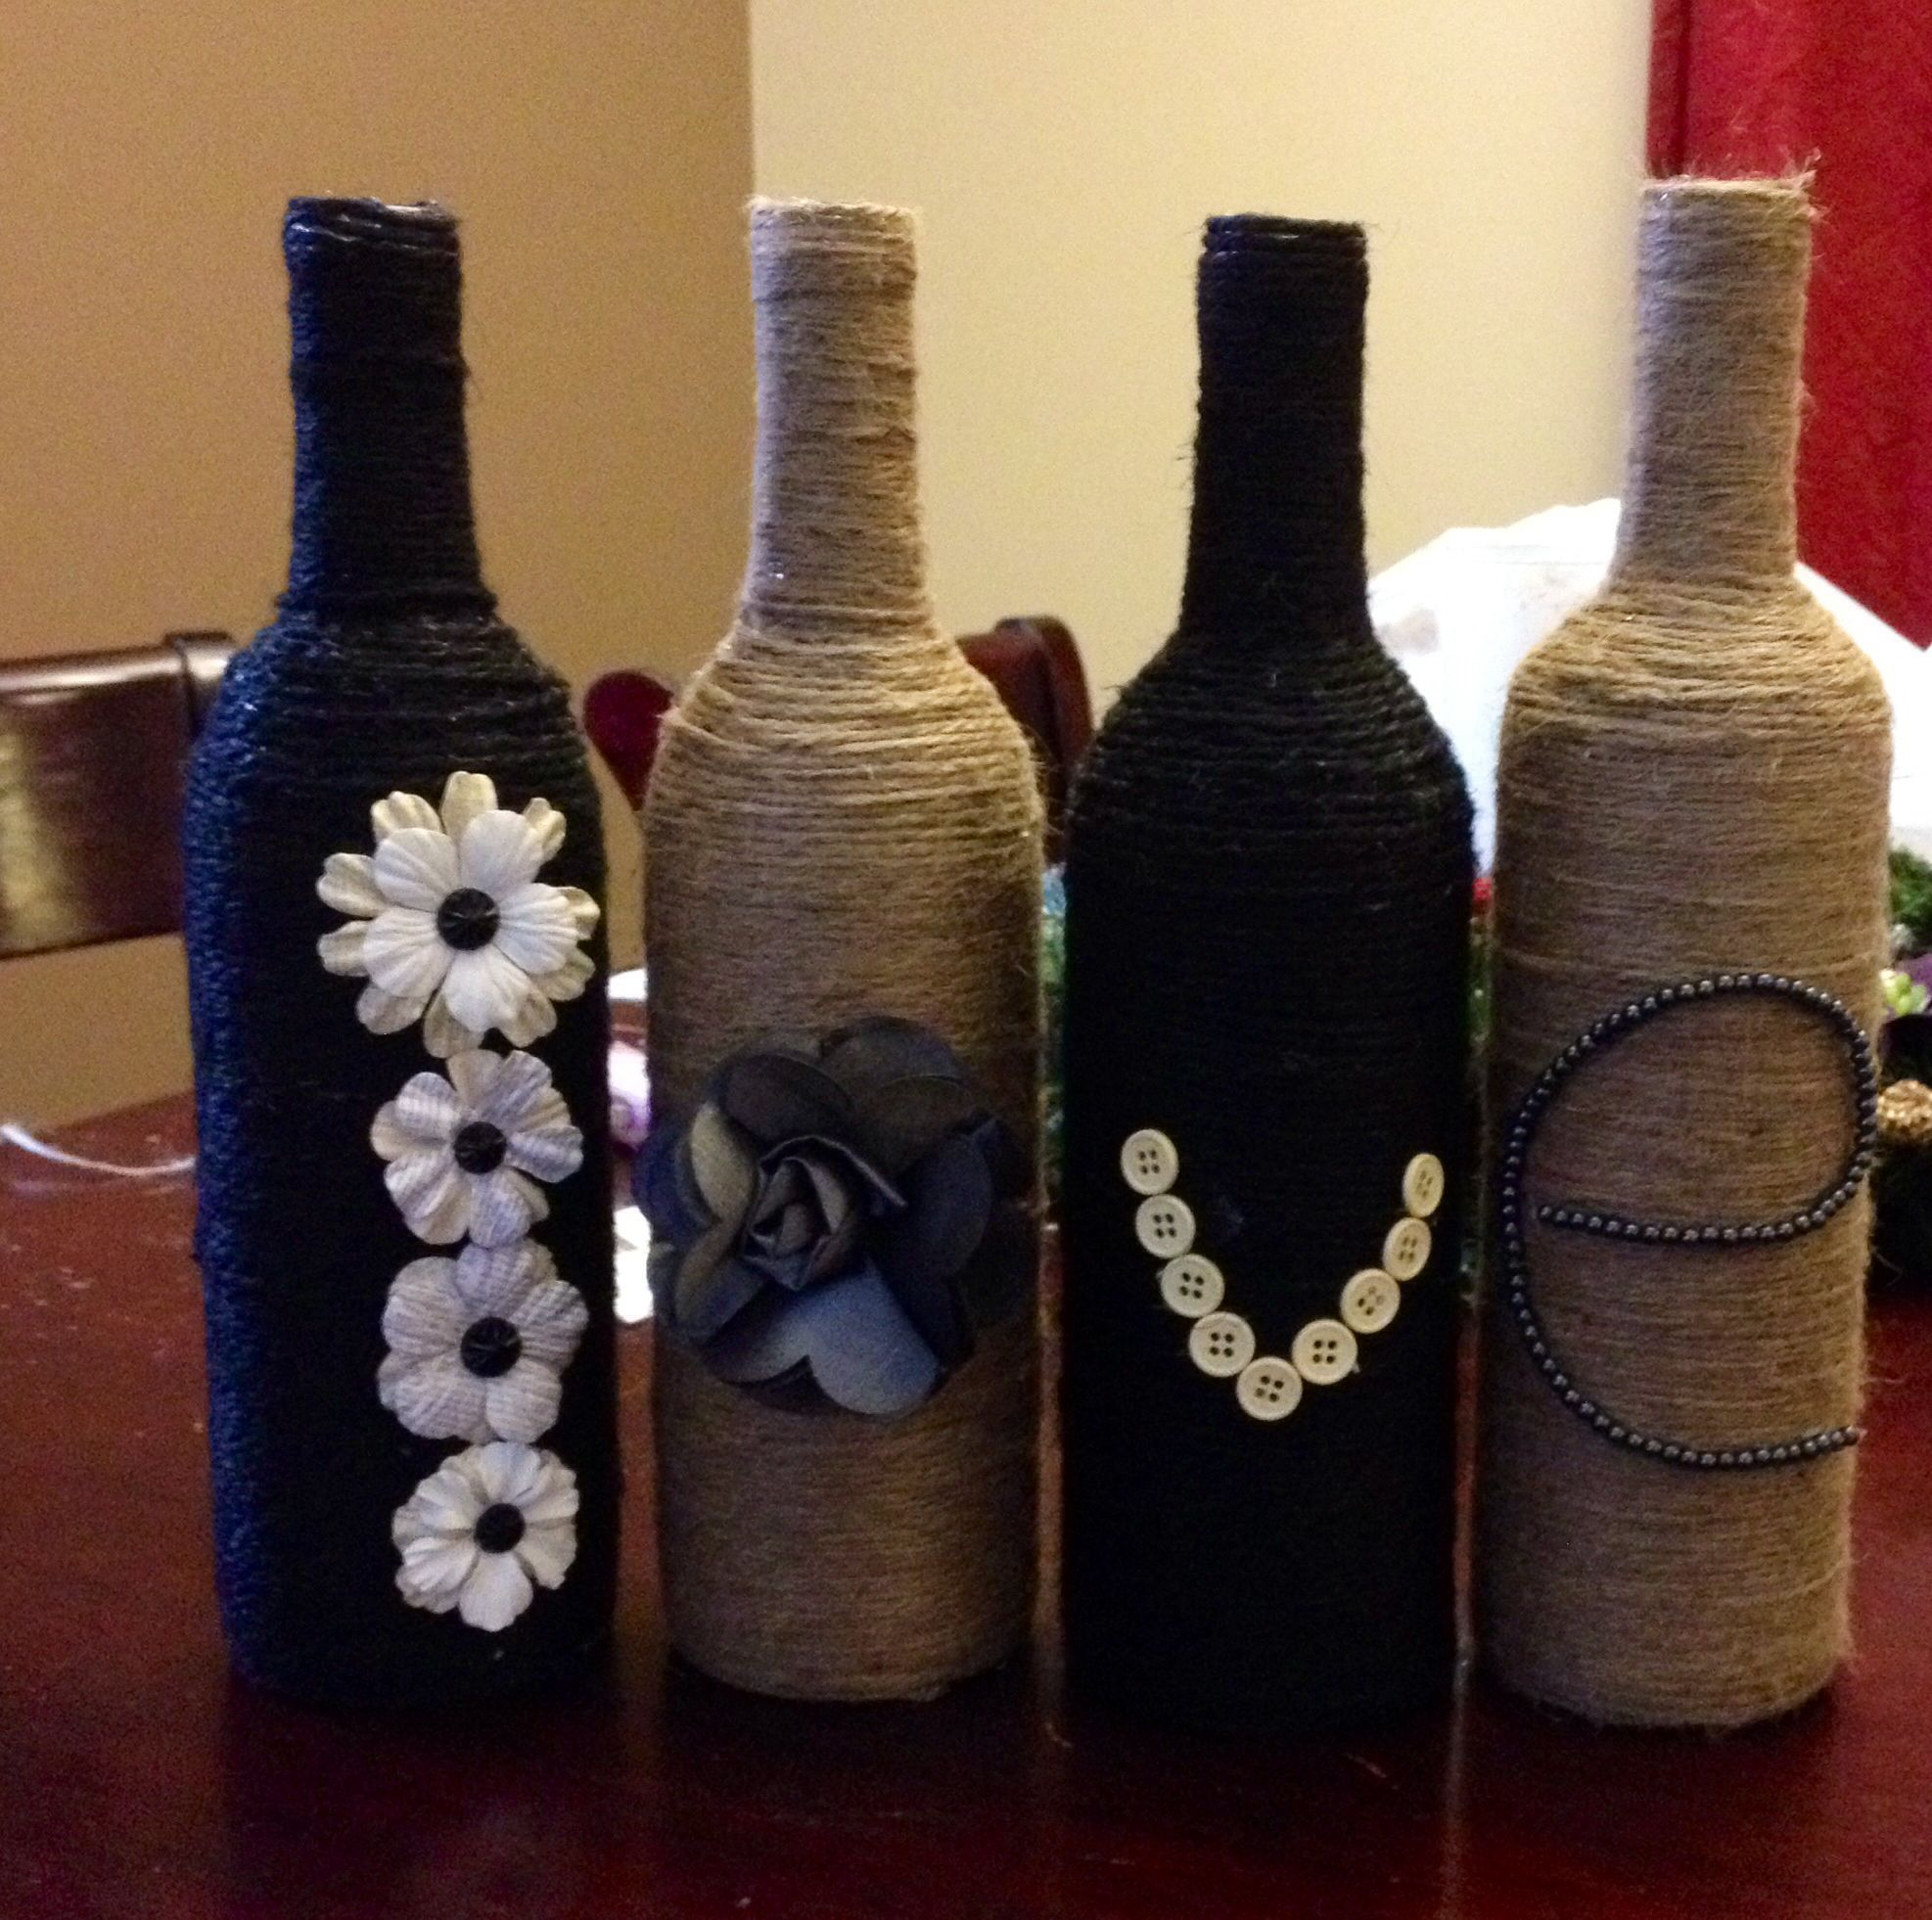 Decorated wine bottles crafts pinterest for Ways to decorate wine bottles